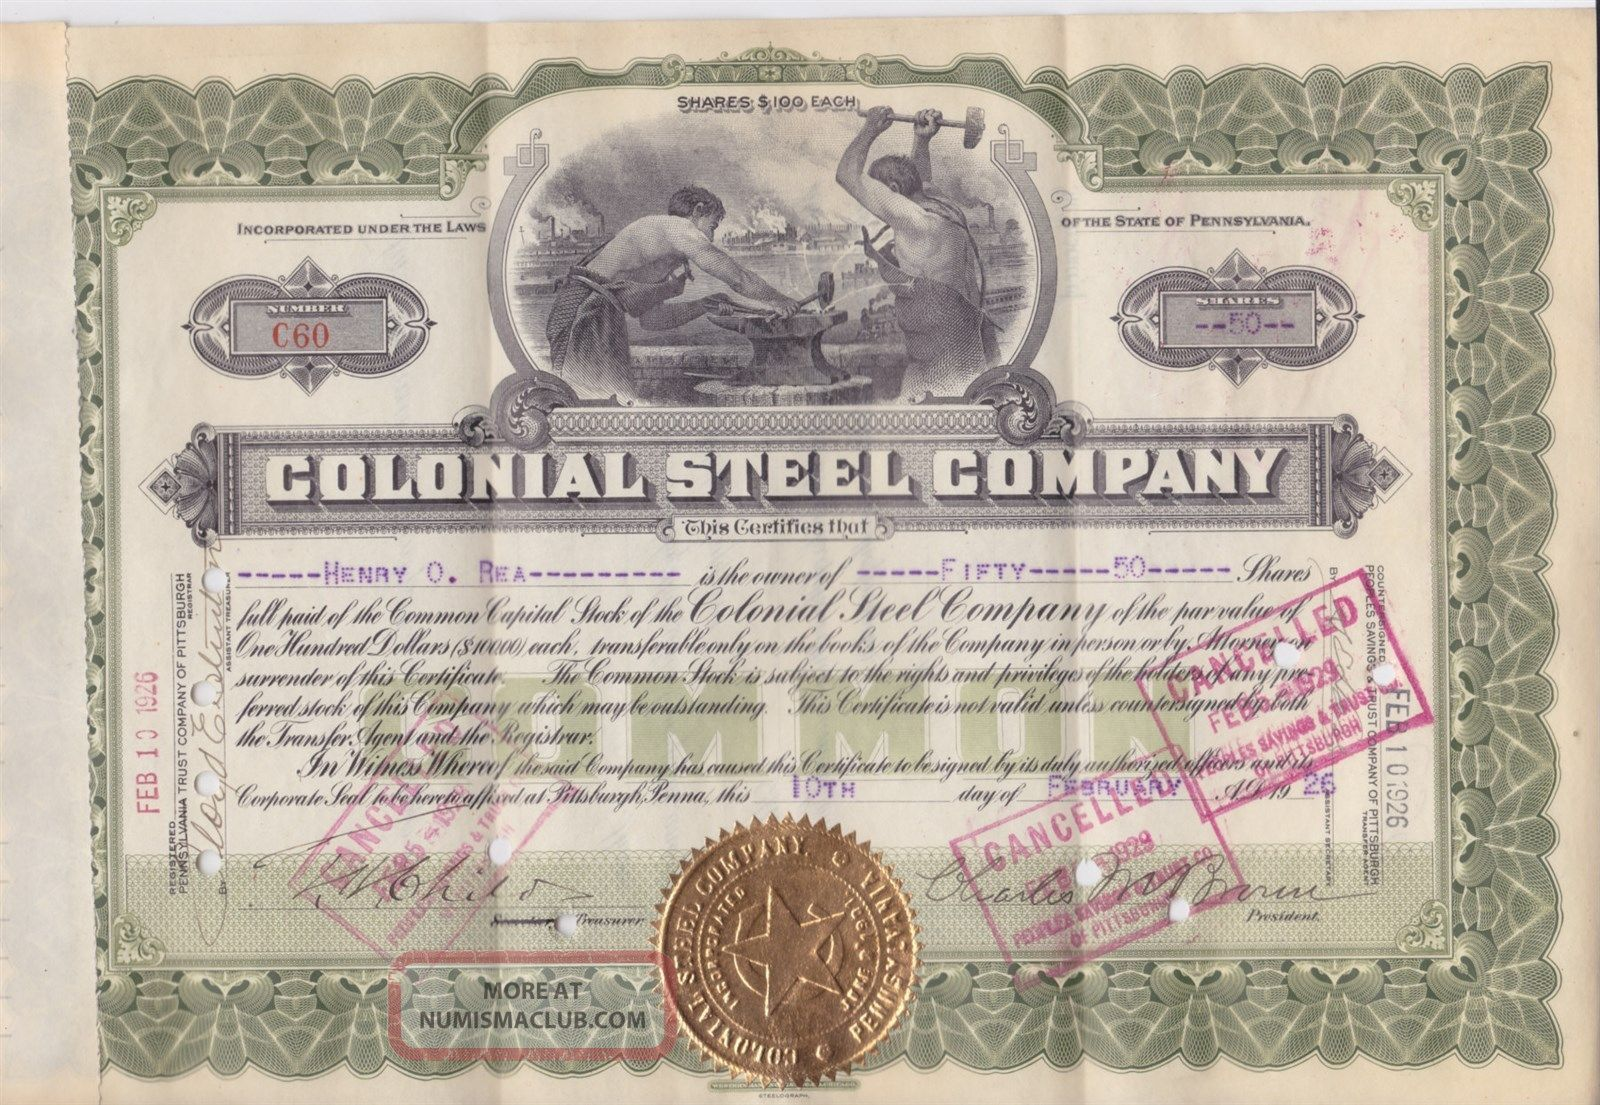 Monaca Pa 1926 Colonial Steel Co.  Stock Certificate Stocks & Bonds, Scripophily photo